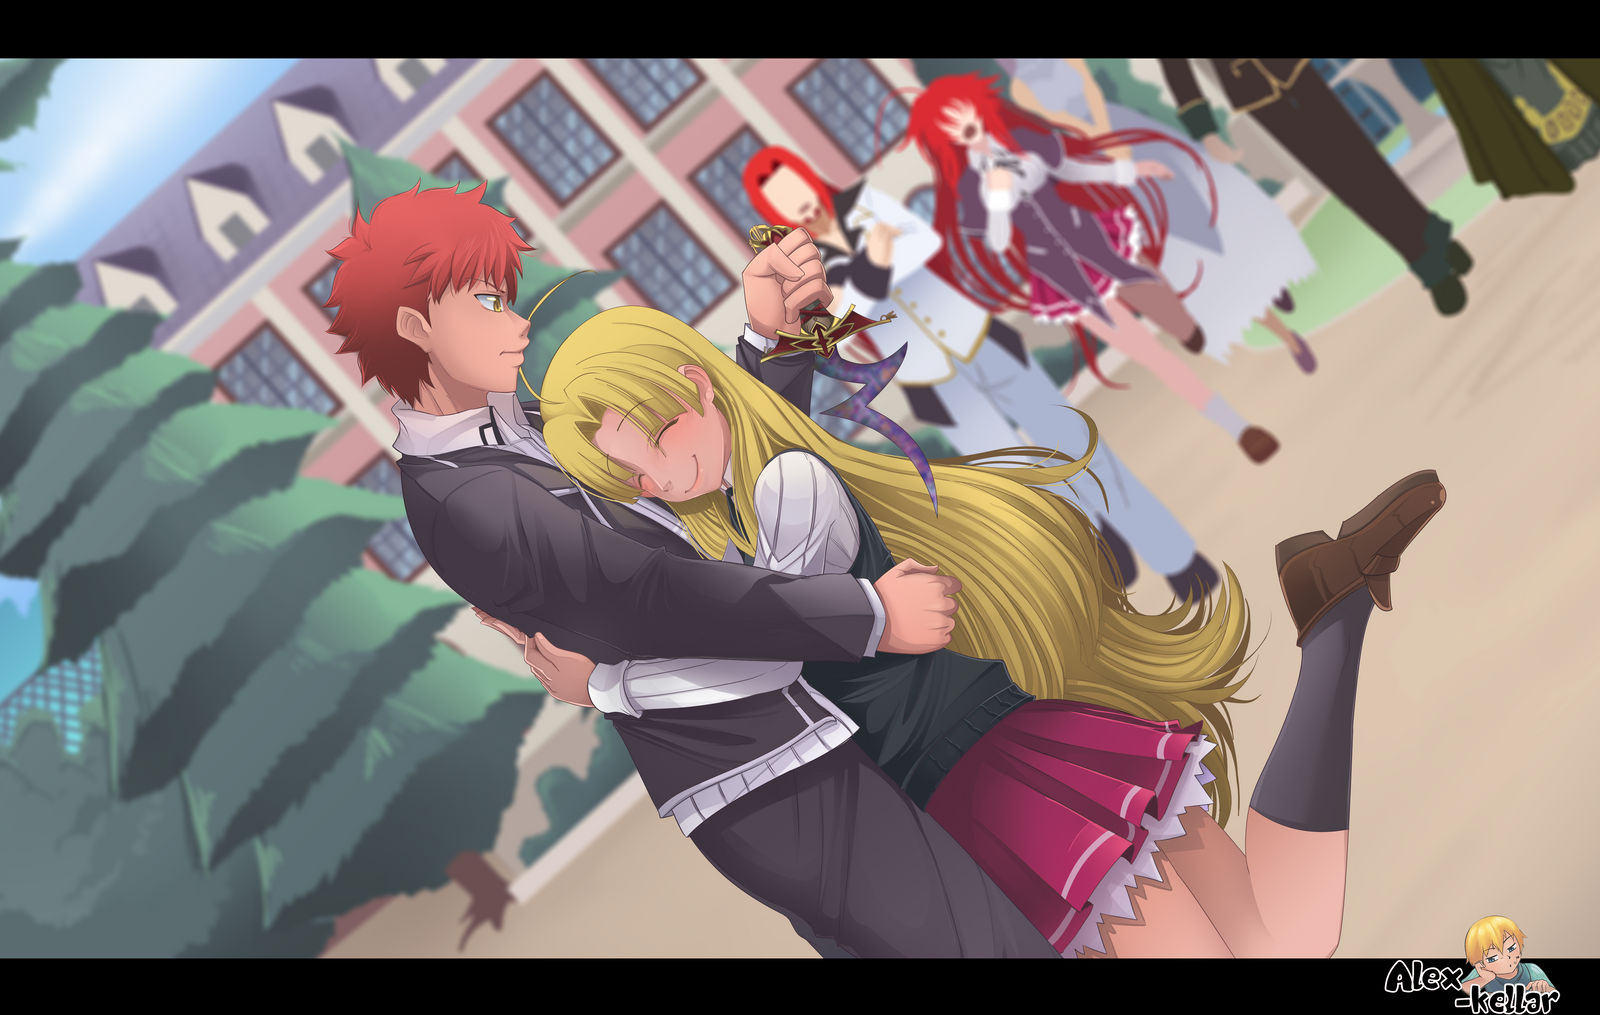 To Save You From Yourself By Alex Kellar On Deviantart Fate/stay night crossover fanfiction archive. yourself by alex kellar on deviantart